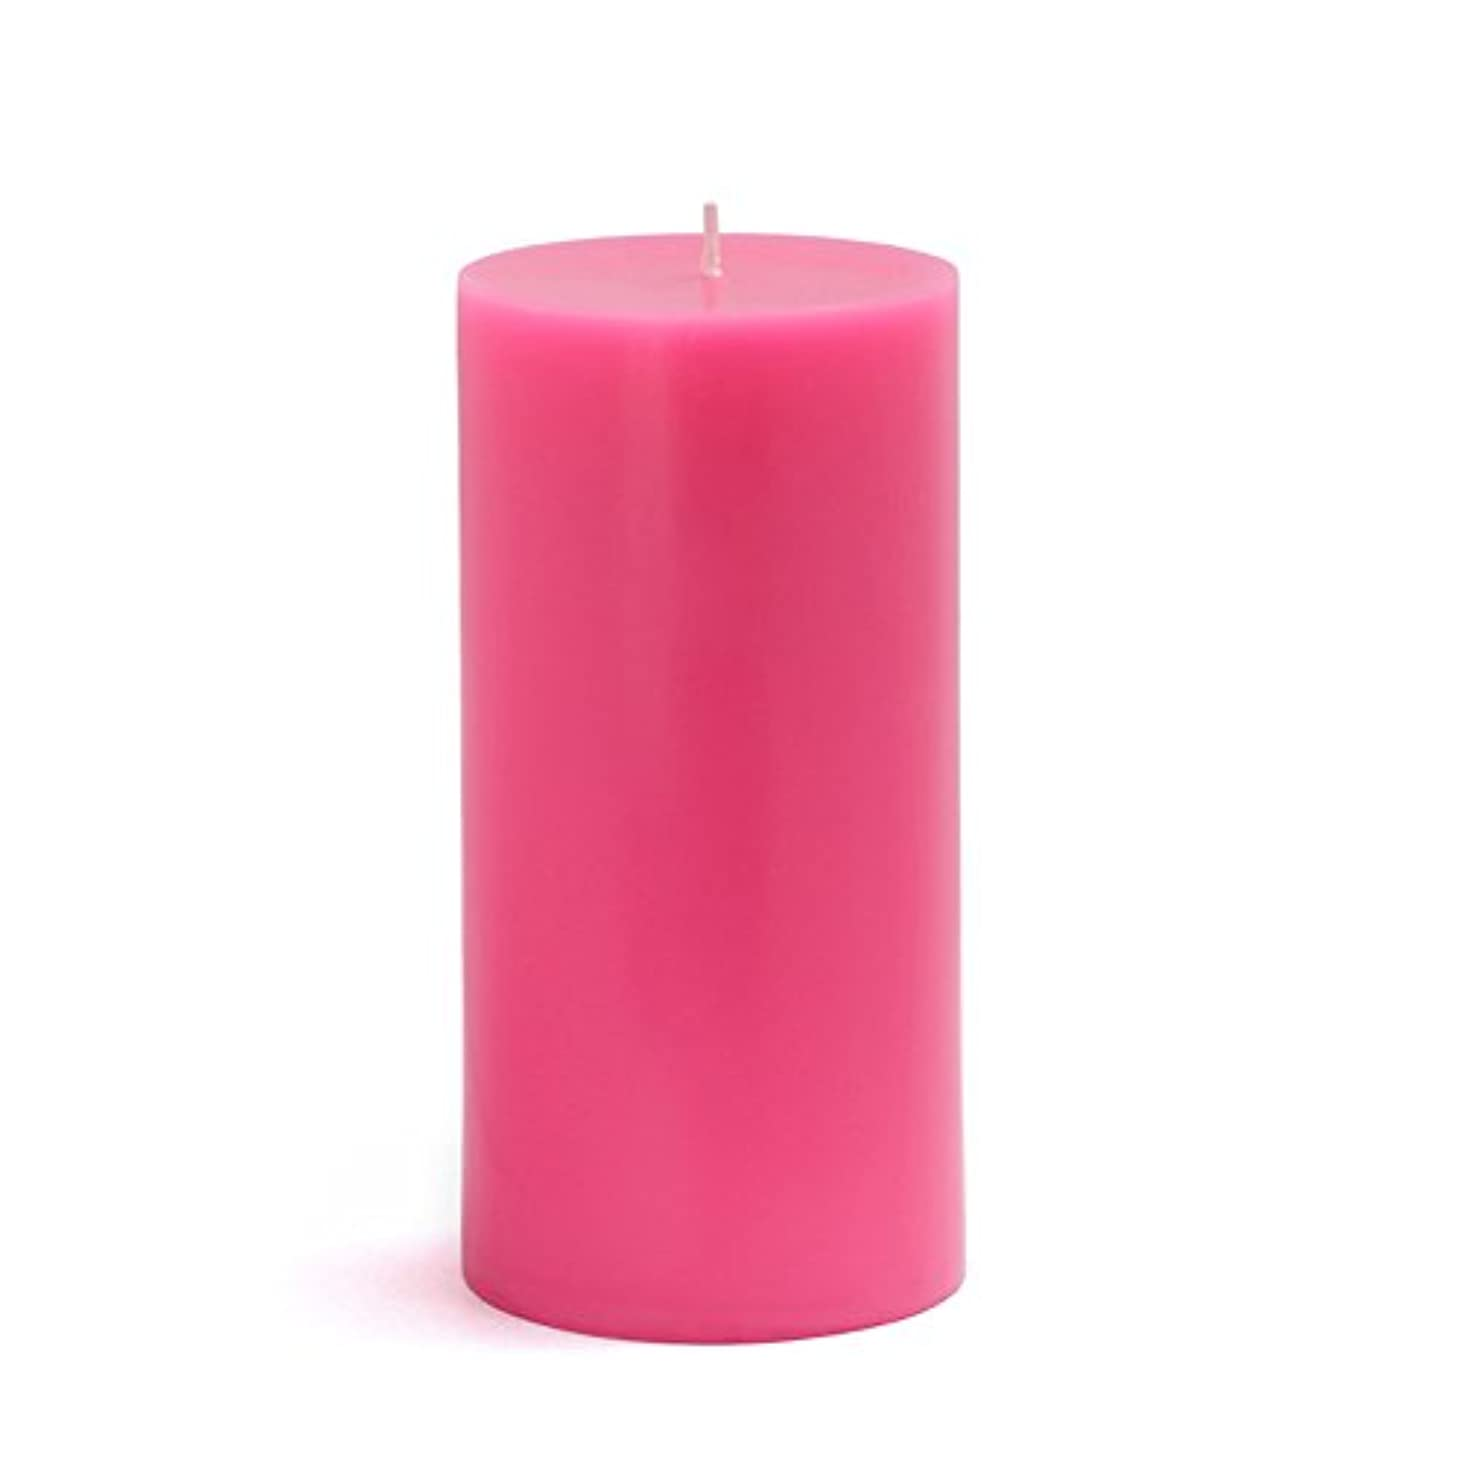 ビヨン勉強する孤独Zest Candle CPZ-084-12 3 x 6 in. Hot Pink Pillar Candles-12pcs-Case - Bulk